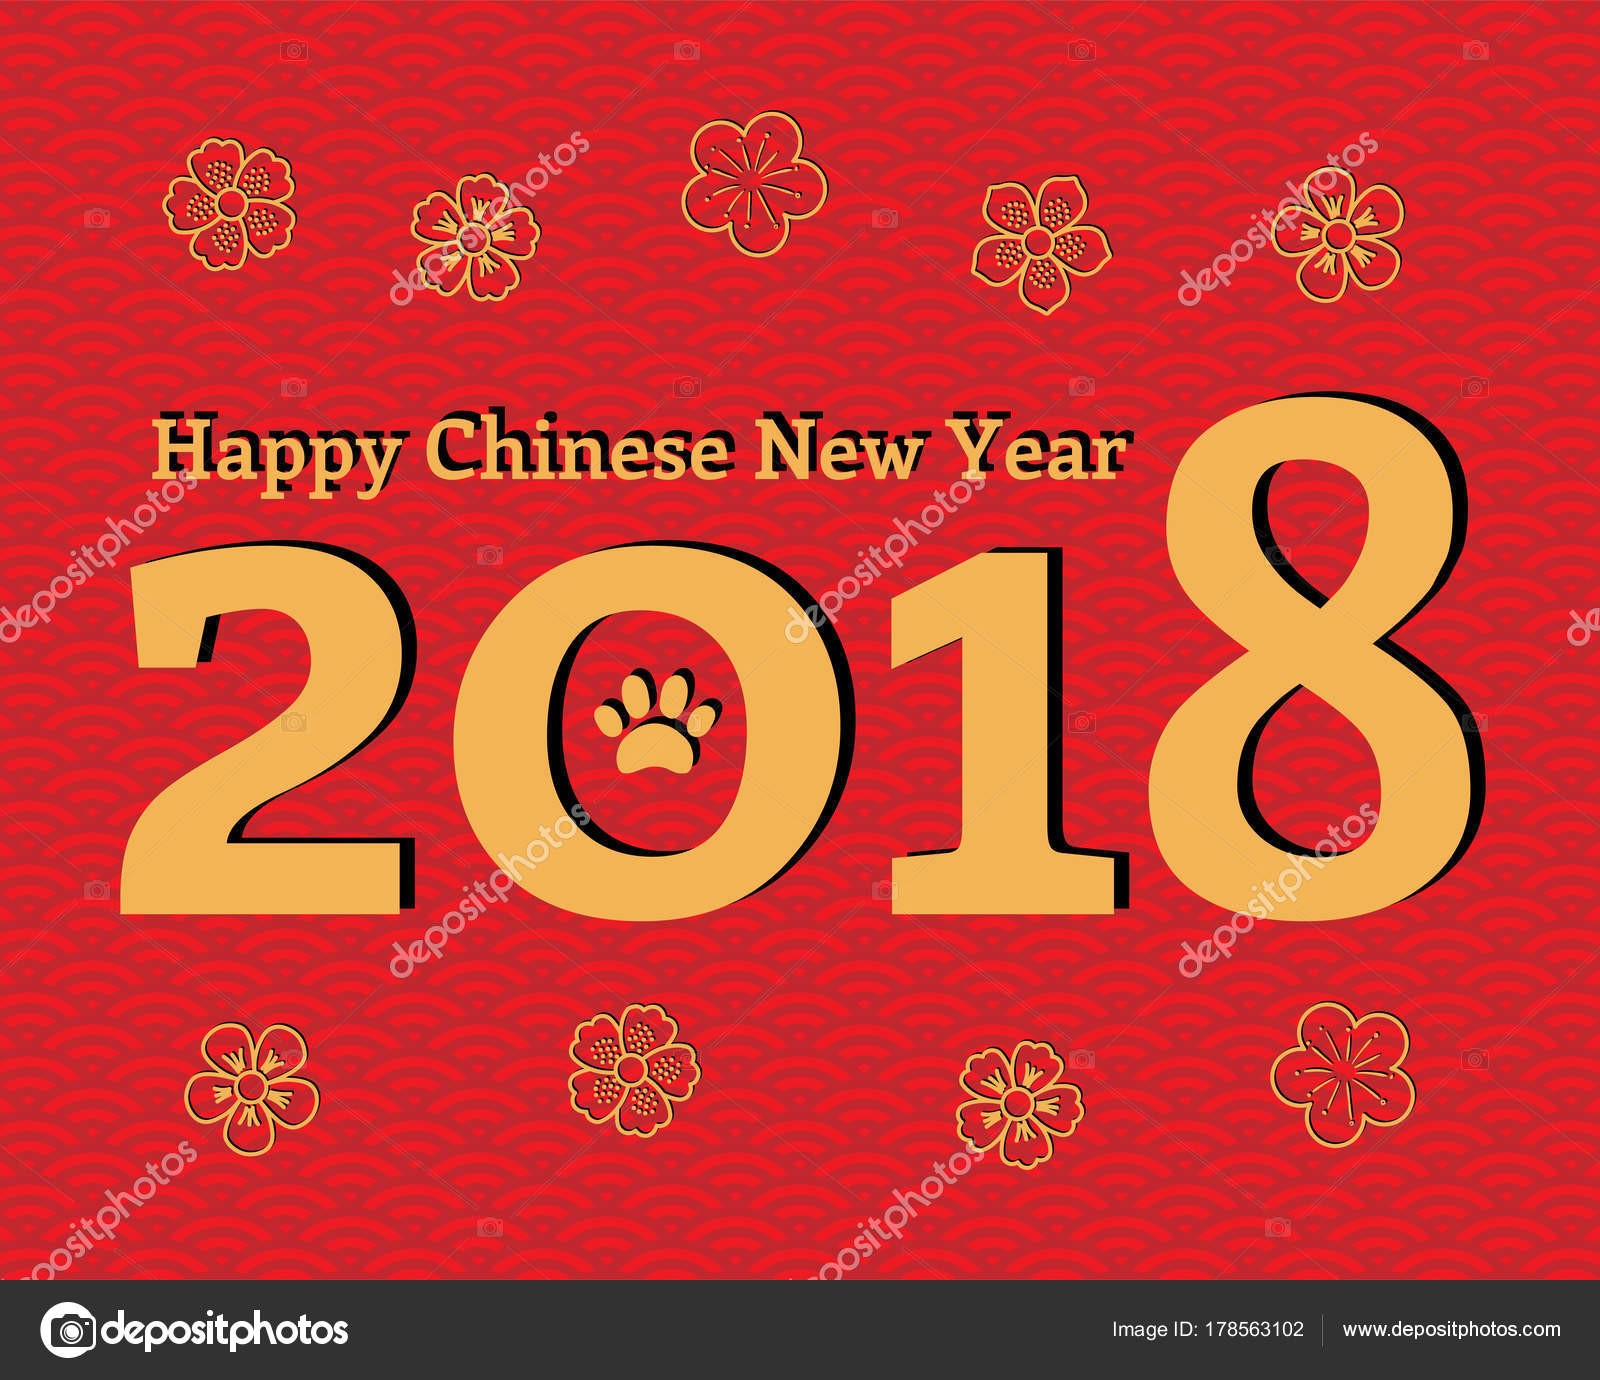 2018 chinese new year greeting card numbers dog paw print stock 2018 chinese new year greeting card numbers dog paw print stock vector m4hsunfo